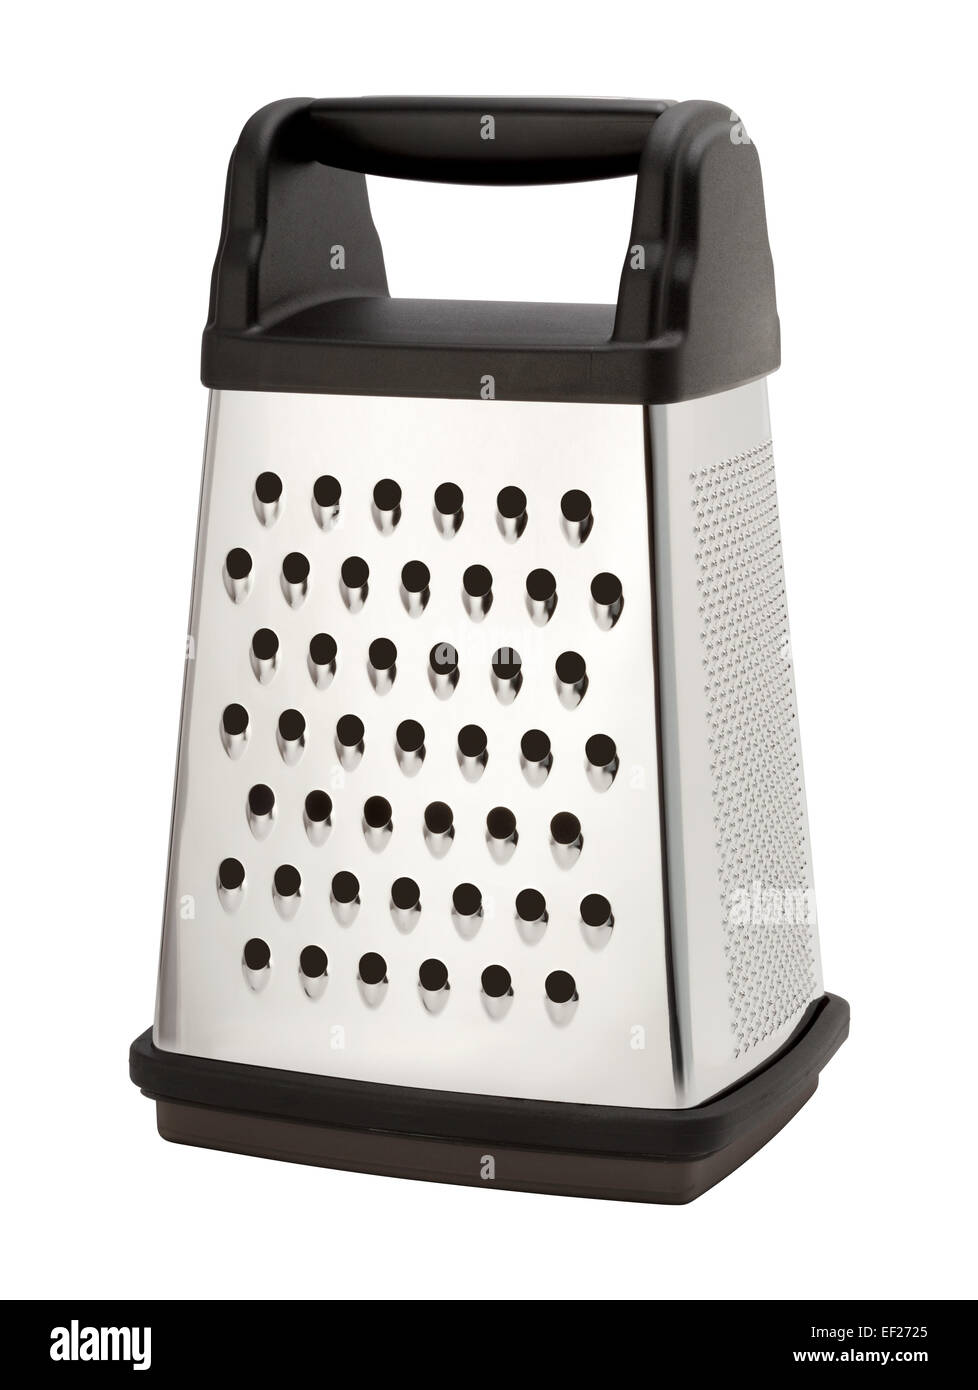 Stainless Steel Box Grater - Stock Image